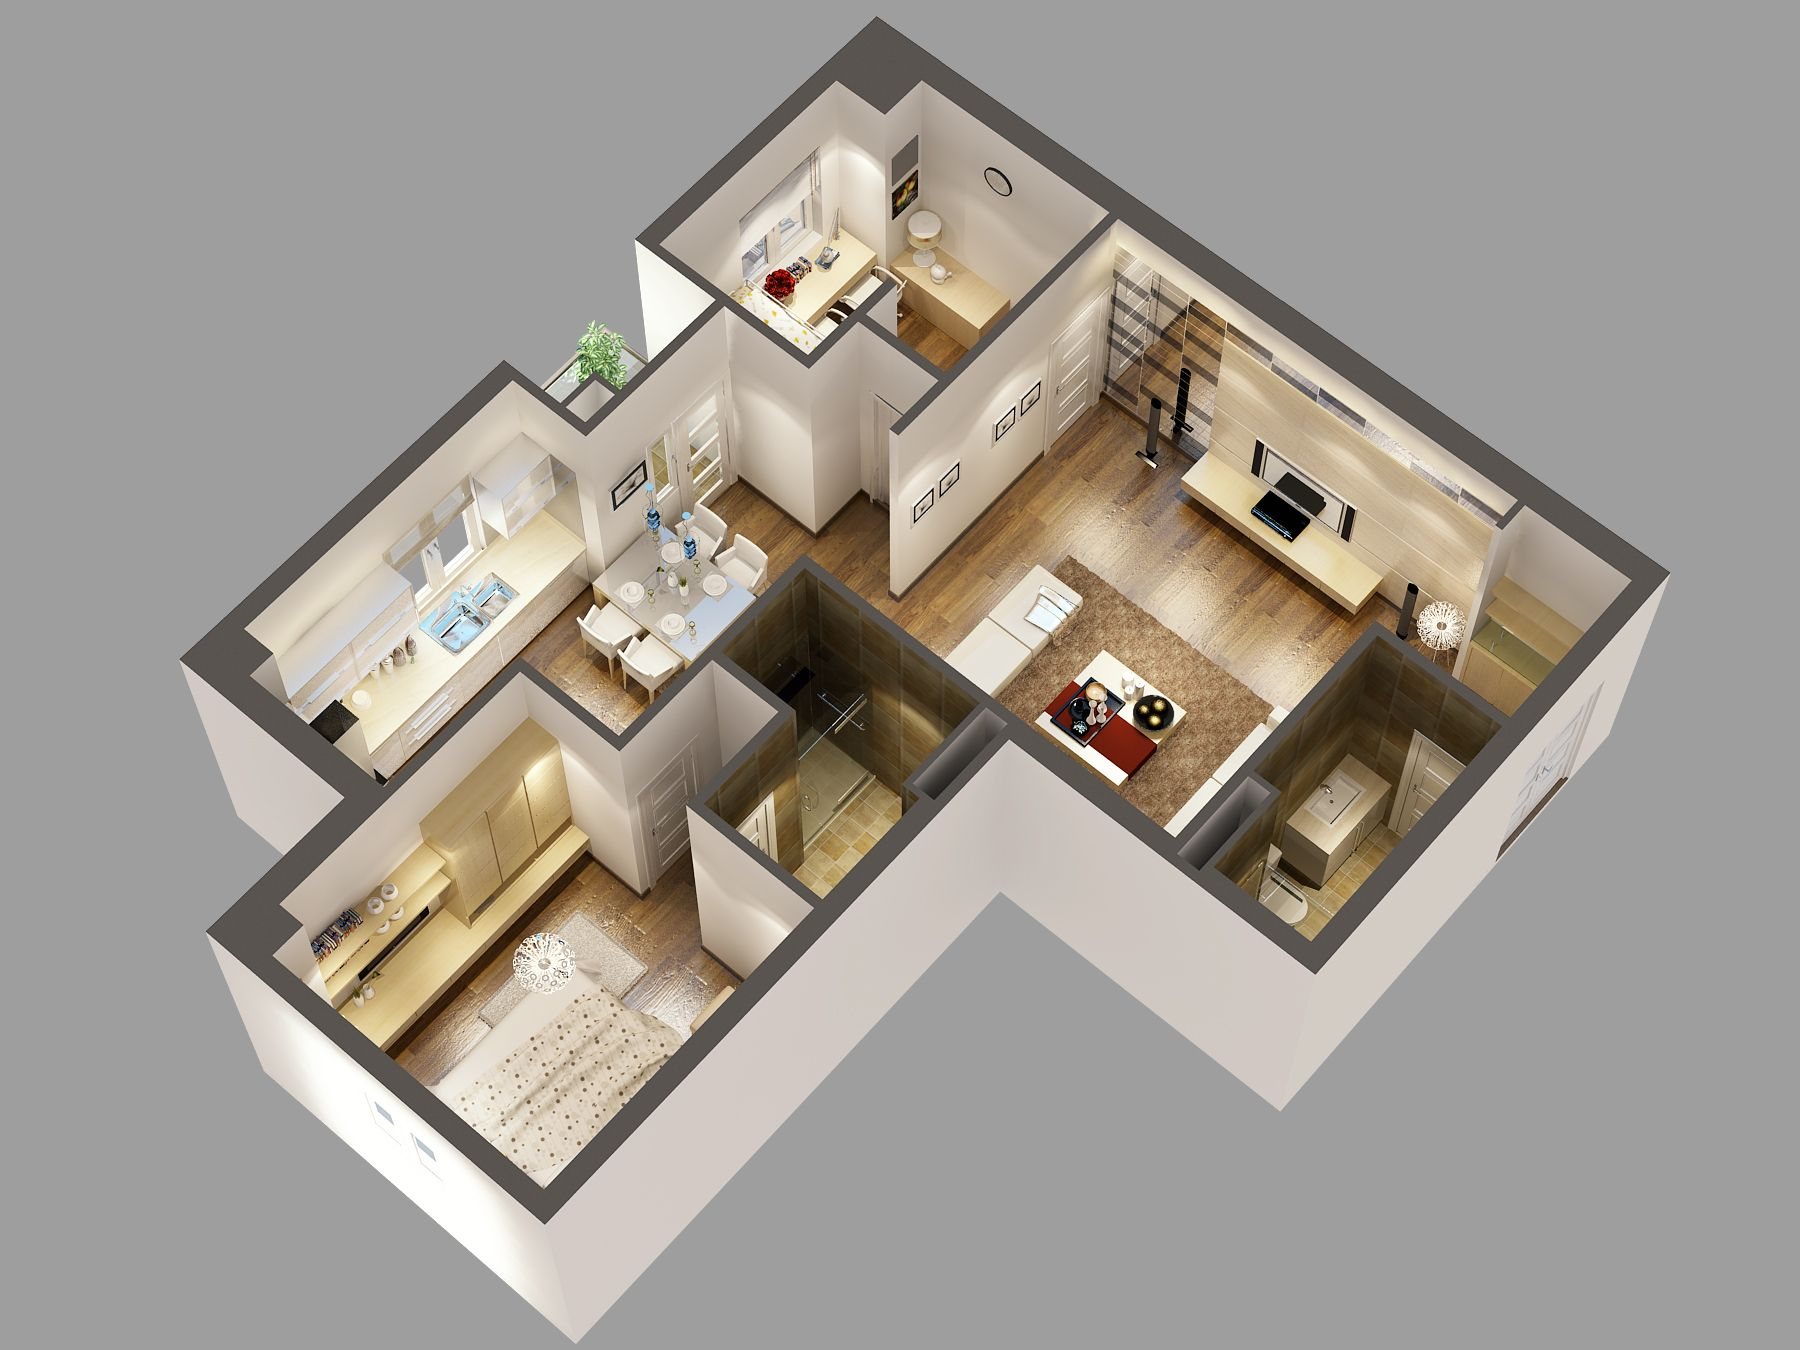 Home 3D Design Online Model Fascinating 3D Floor Plan Software Free With Awesome Modern Interior Design . 2017